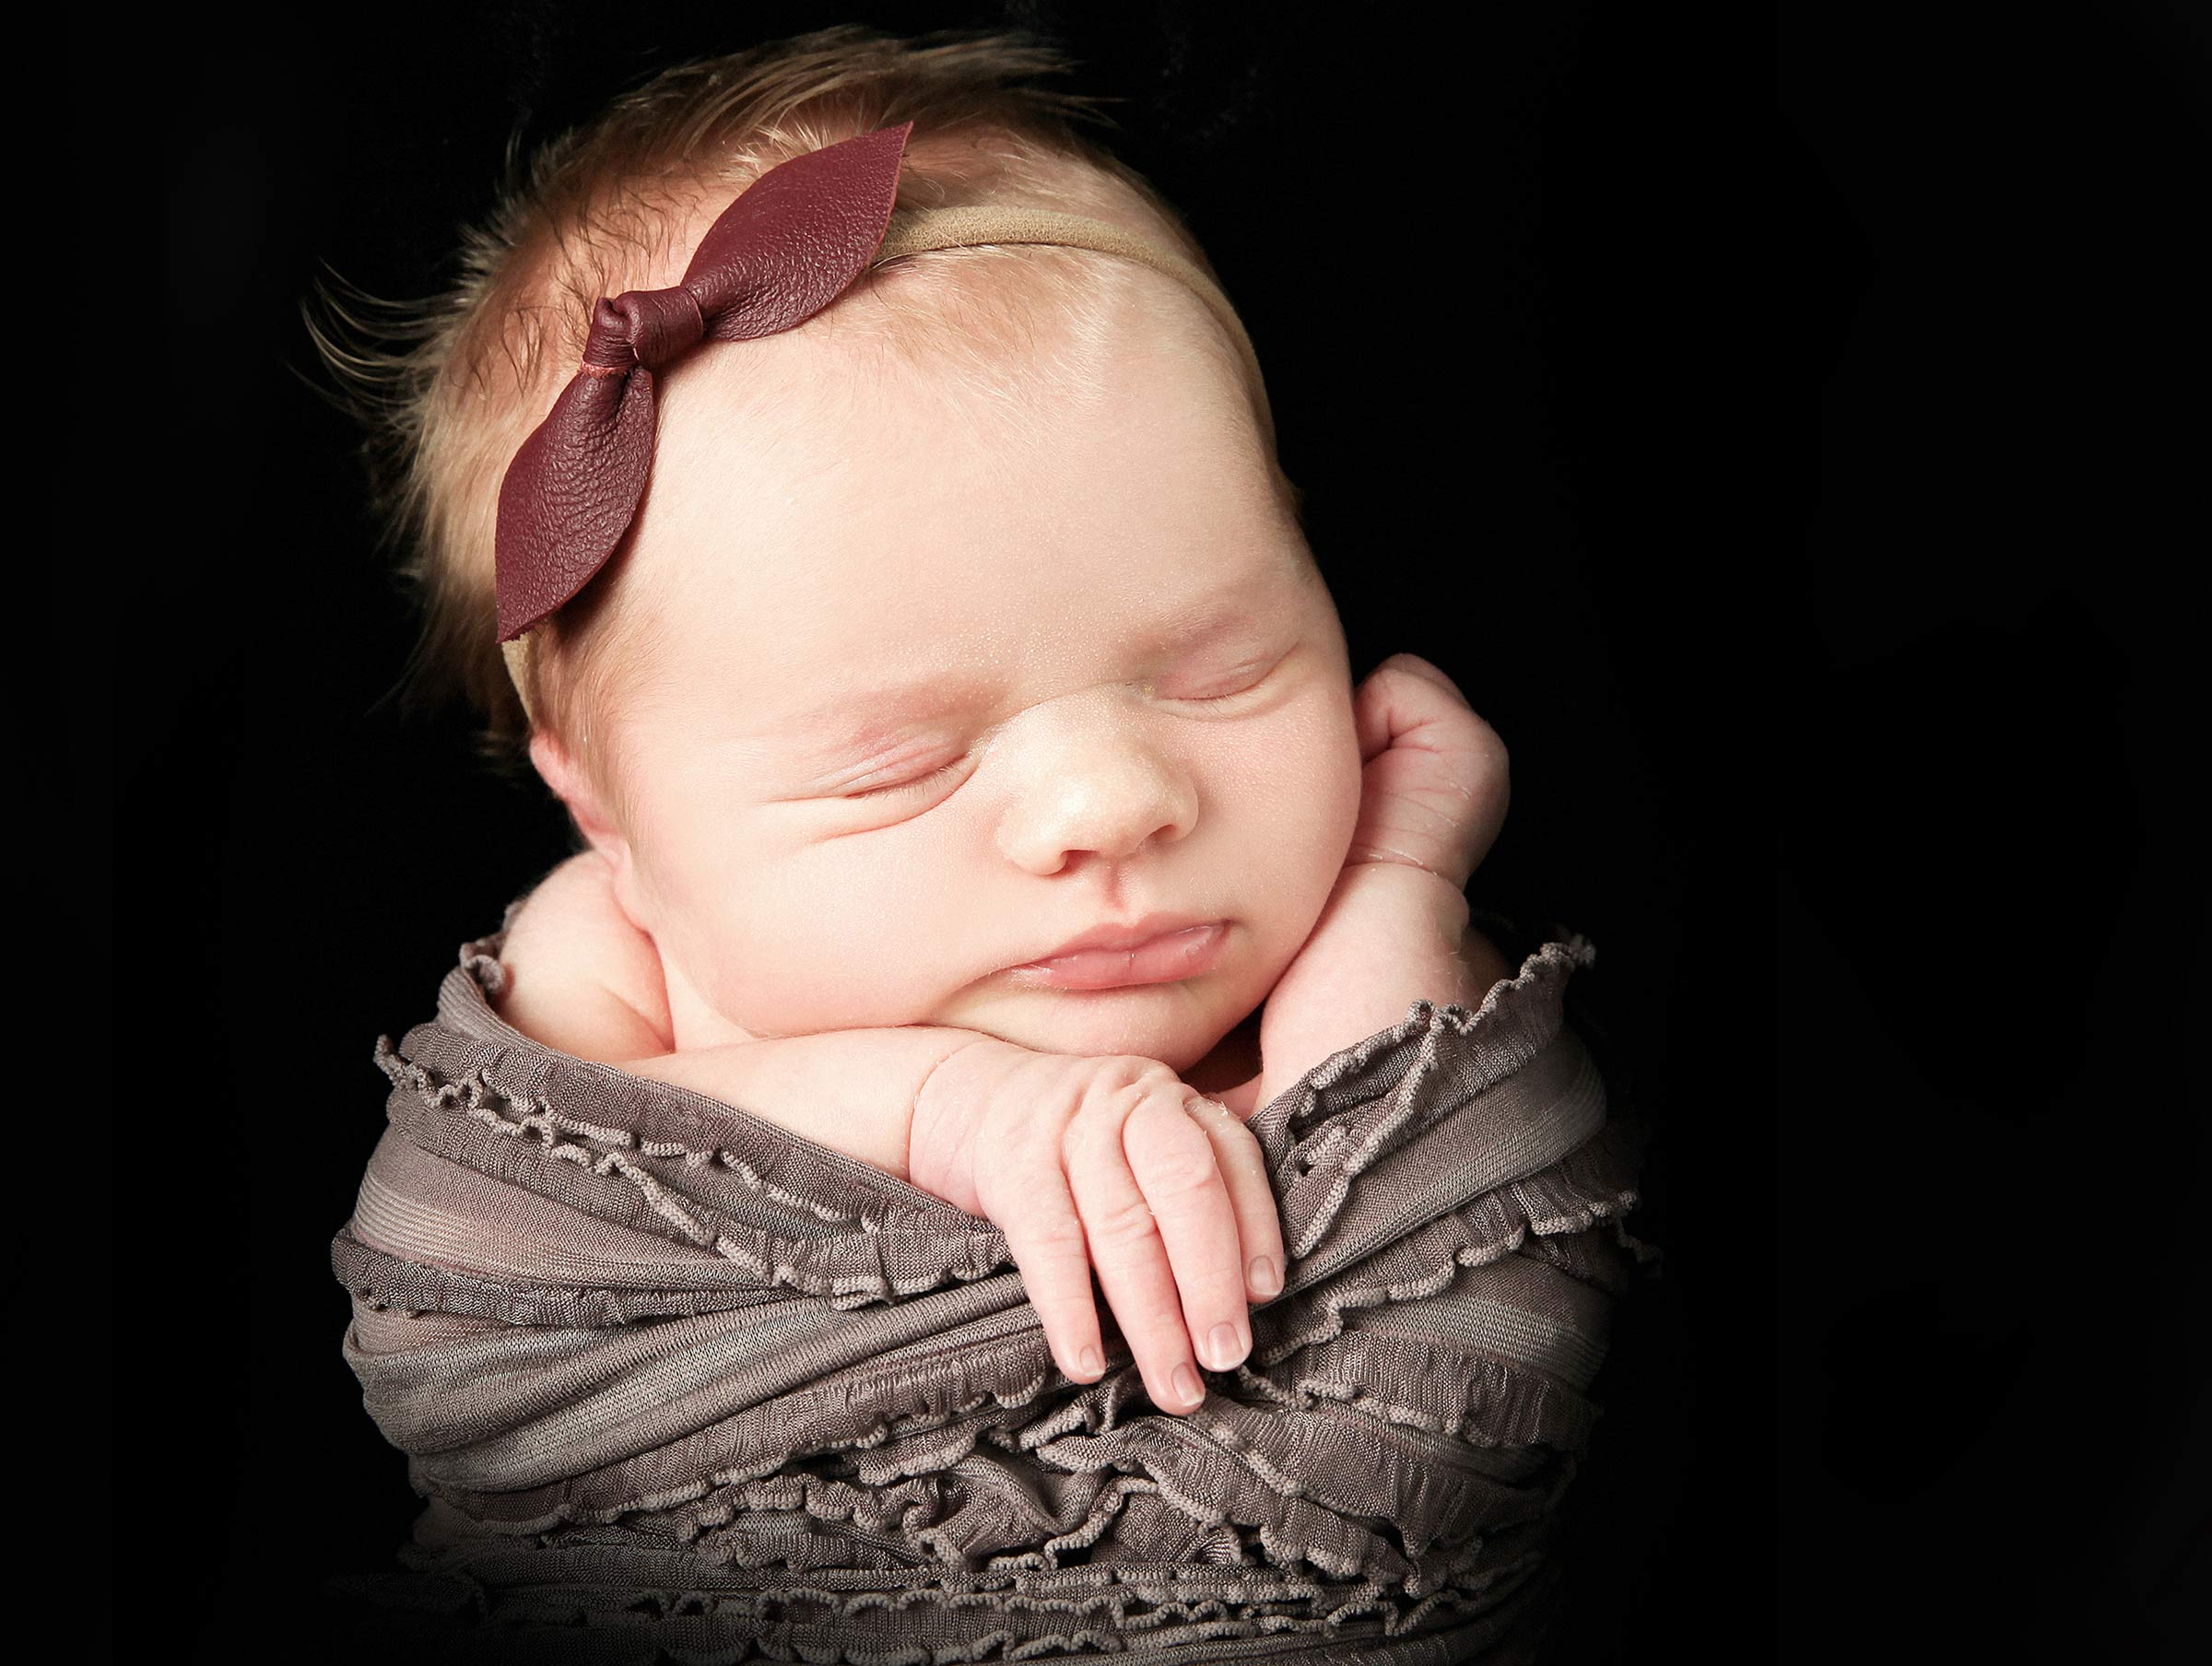 baby-newborn-photographers-london-ontario-family-child-photographers-paula-tizzard